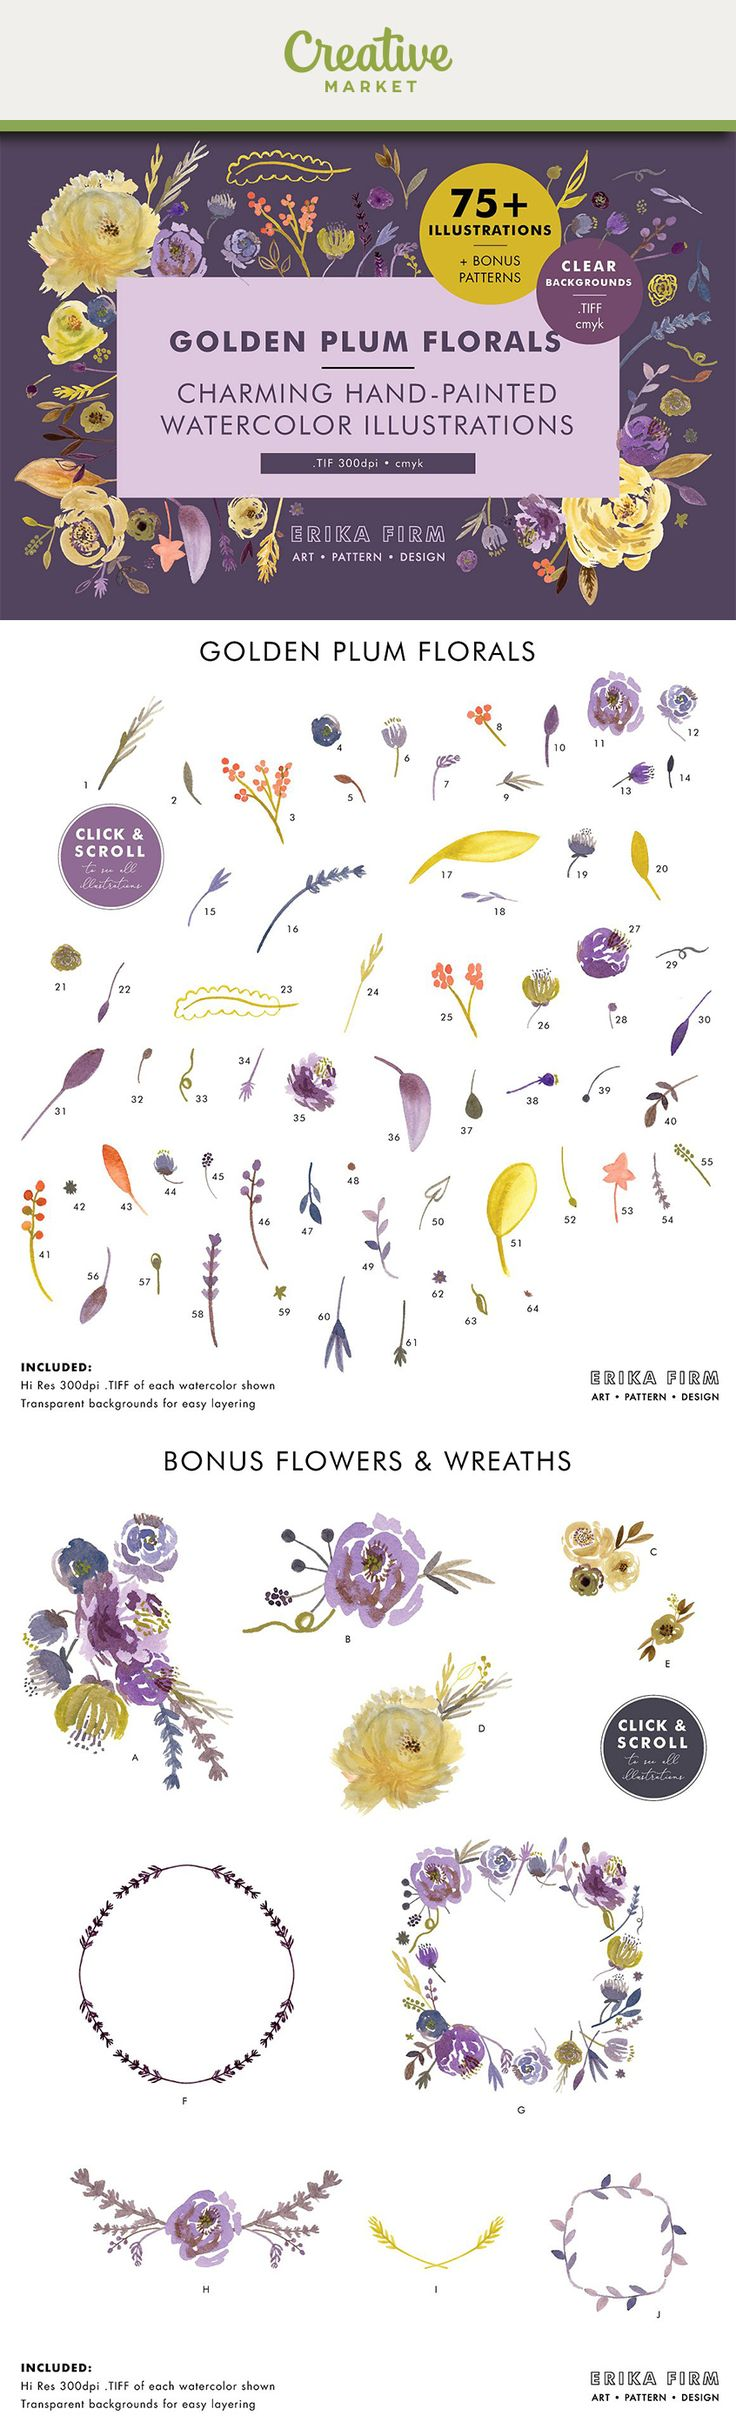 Affiliate | This set of charming hand-painted watercolor floral illustrations comes with flowers, leaves and stems for endless combinations. The set includes pretty watercolor flowers, watercolor stems, watercolor leaves, watercolor berries, and watercolor bouquets in plum, violet, lavender, purple, golden yellow, and chartreuse. All illustration files have transparent background for easy and fun layering. You'll also get bonus floral bouquets, combined flowers, and wreaths.